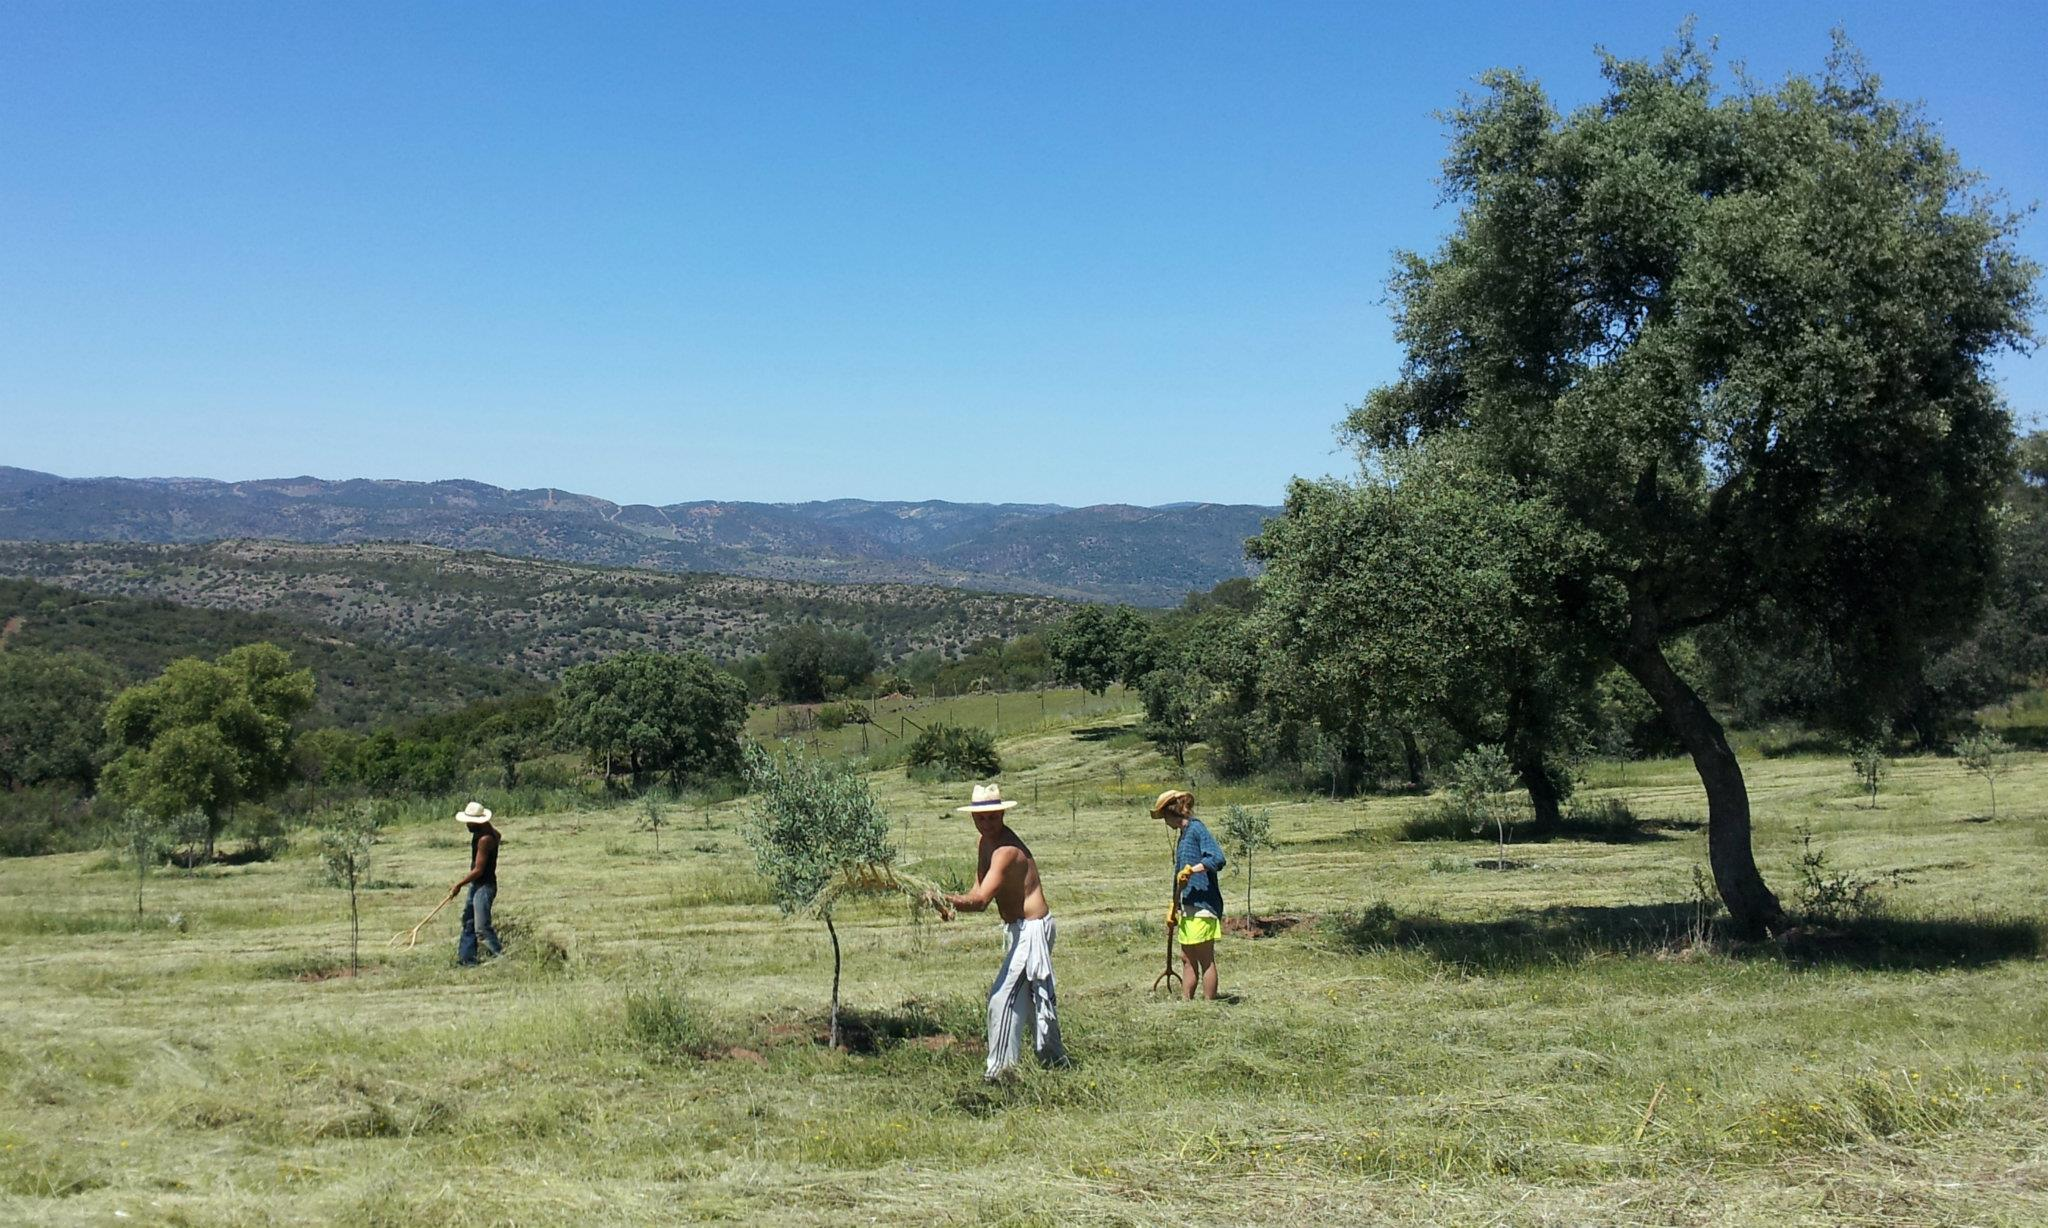 Facendo-wwoofing-in-Andalusia